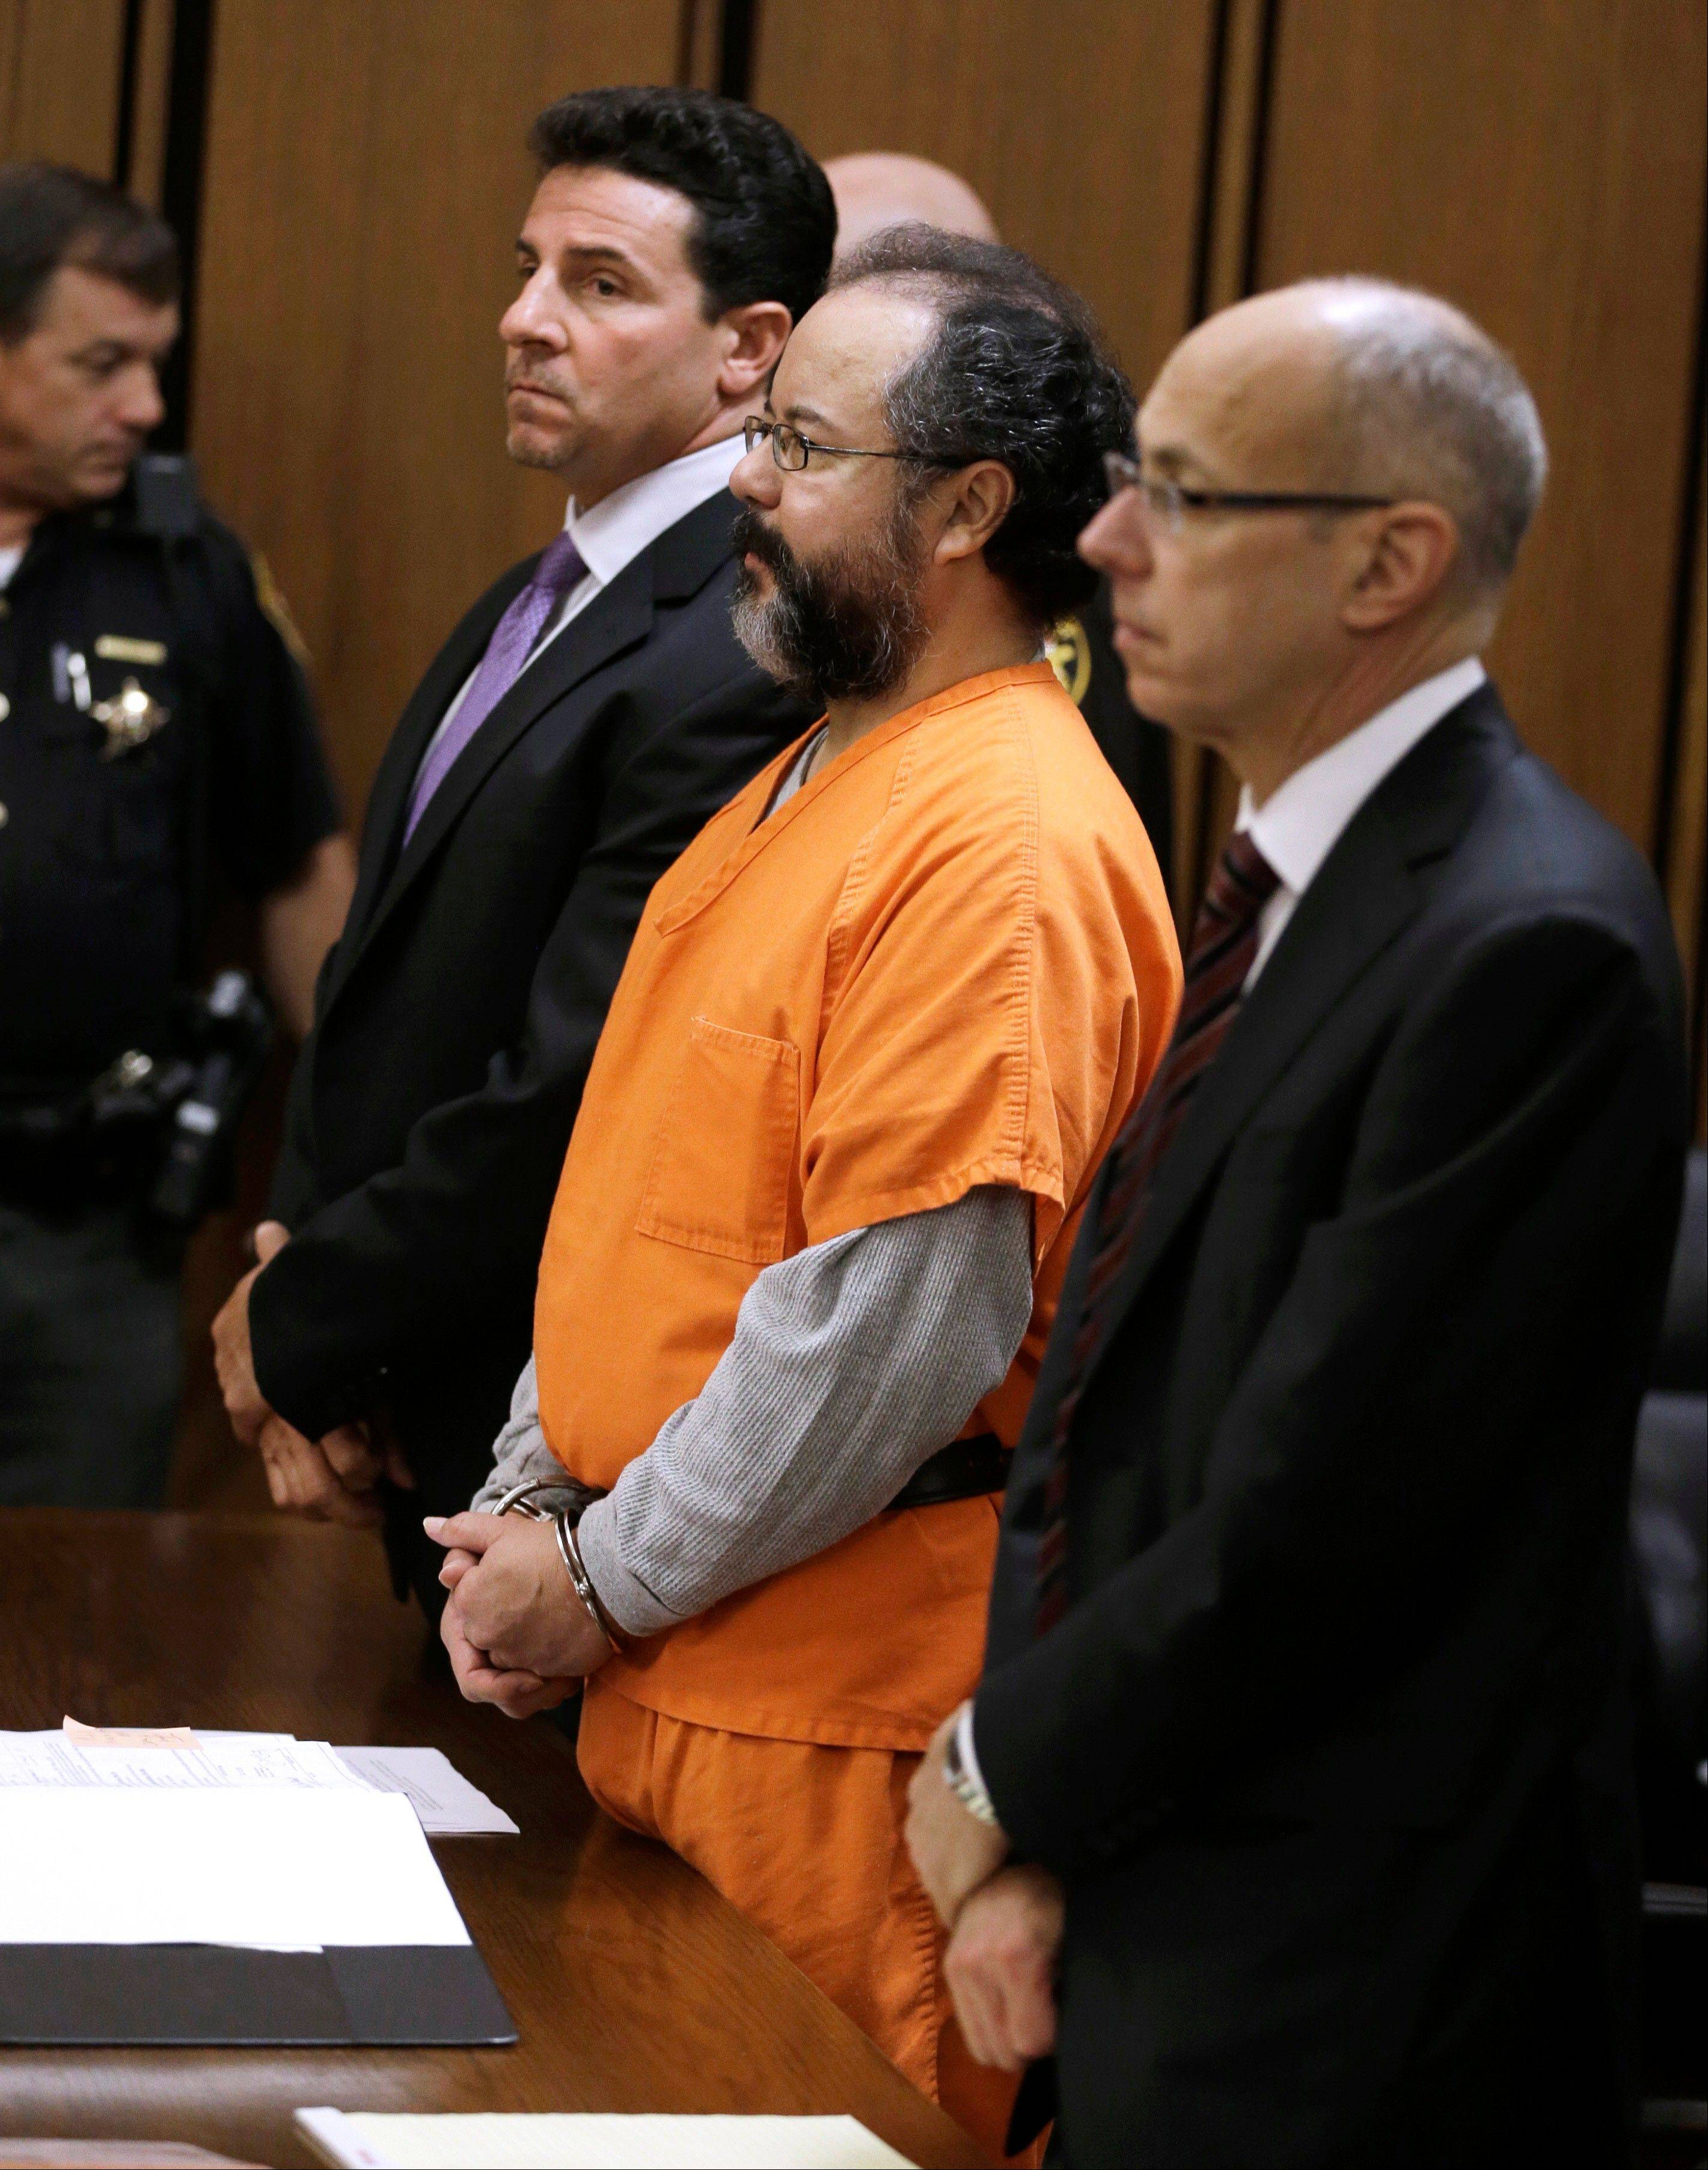 Ariel Castro's son says life sentence 'appropriate'